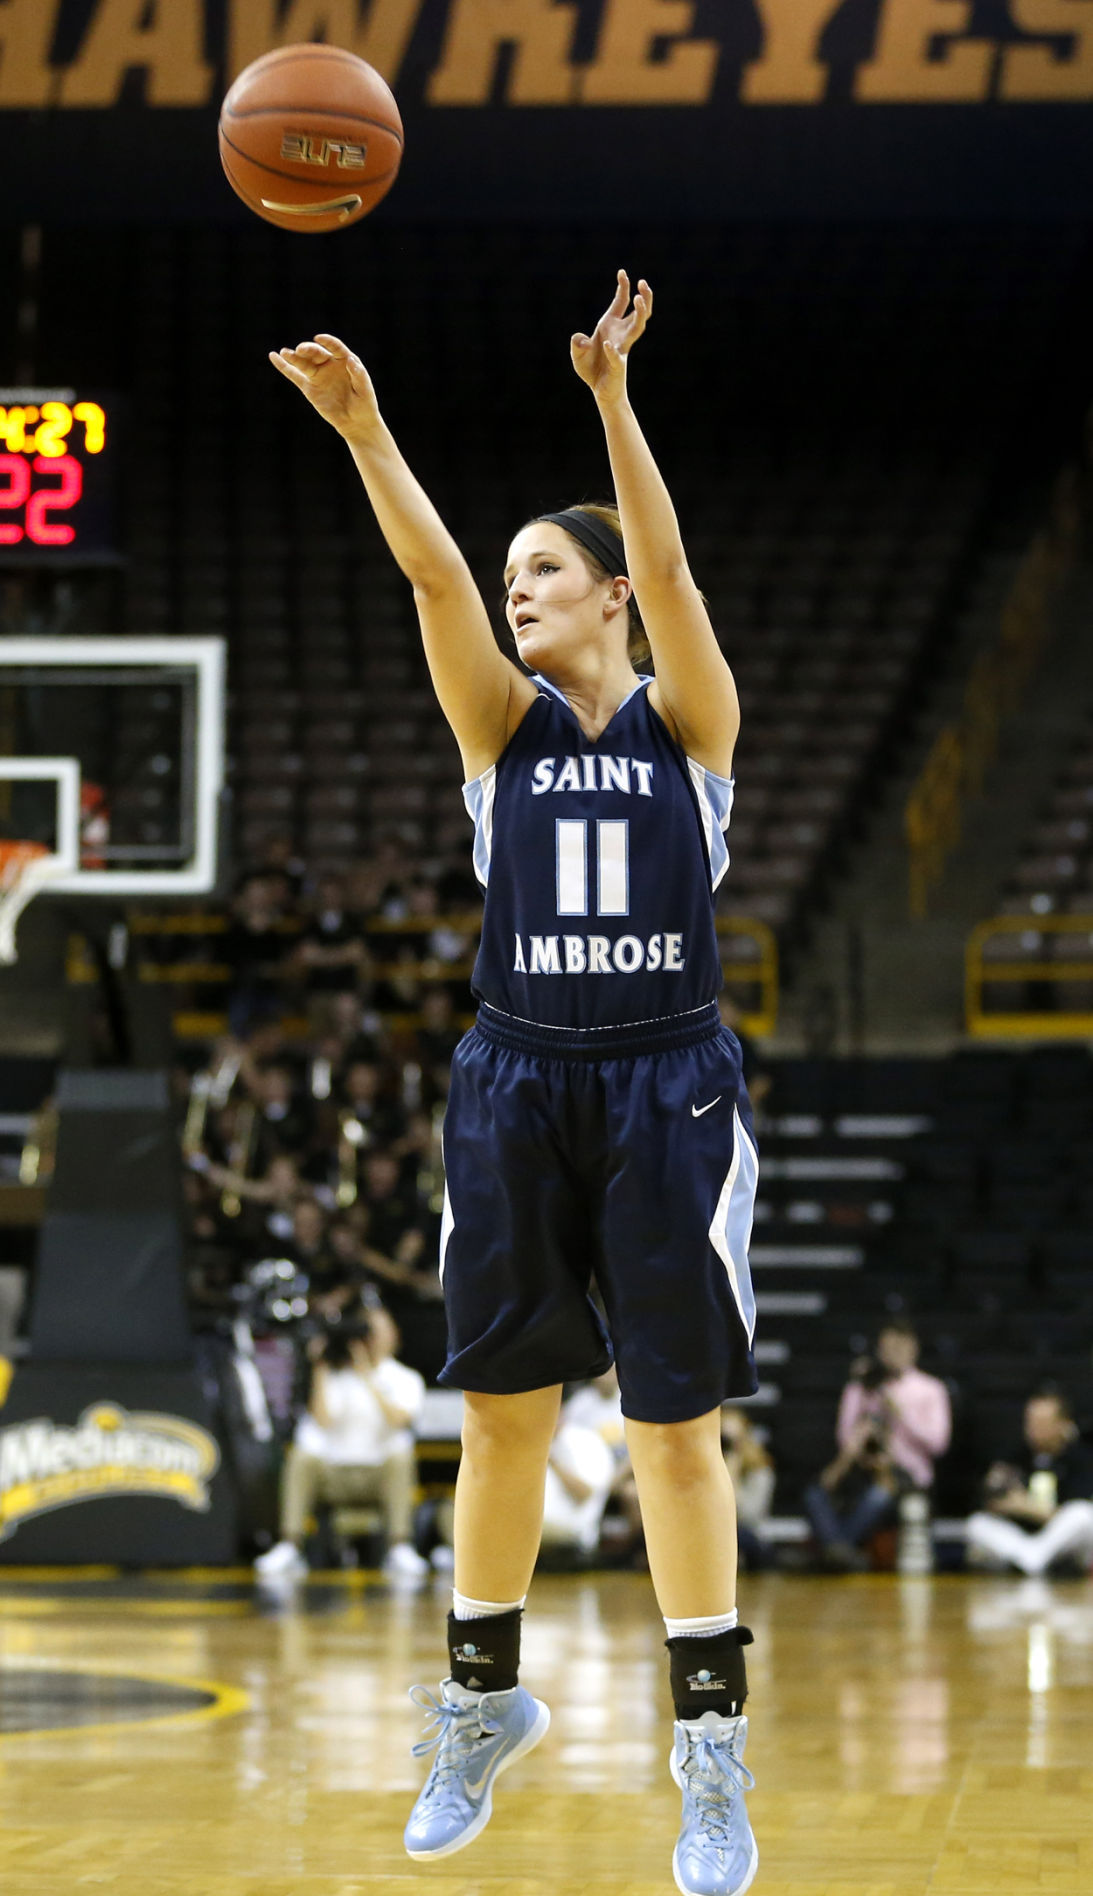 81c5ba03c44d3 Deanna Busse of St. Ambrose shoots during an exhibition game at Iowa during  the 2014-15 season.